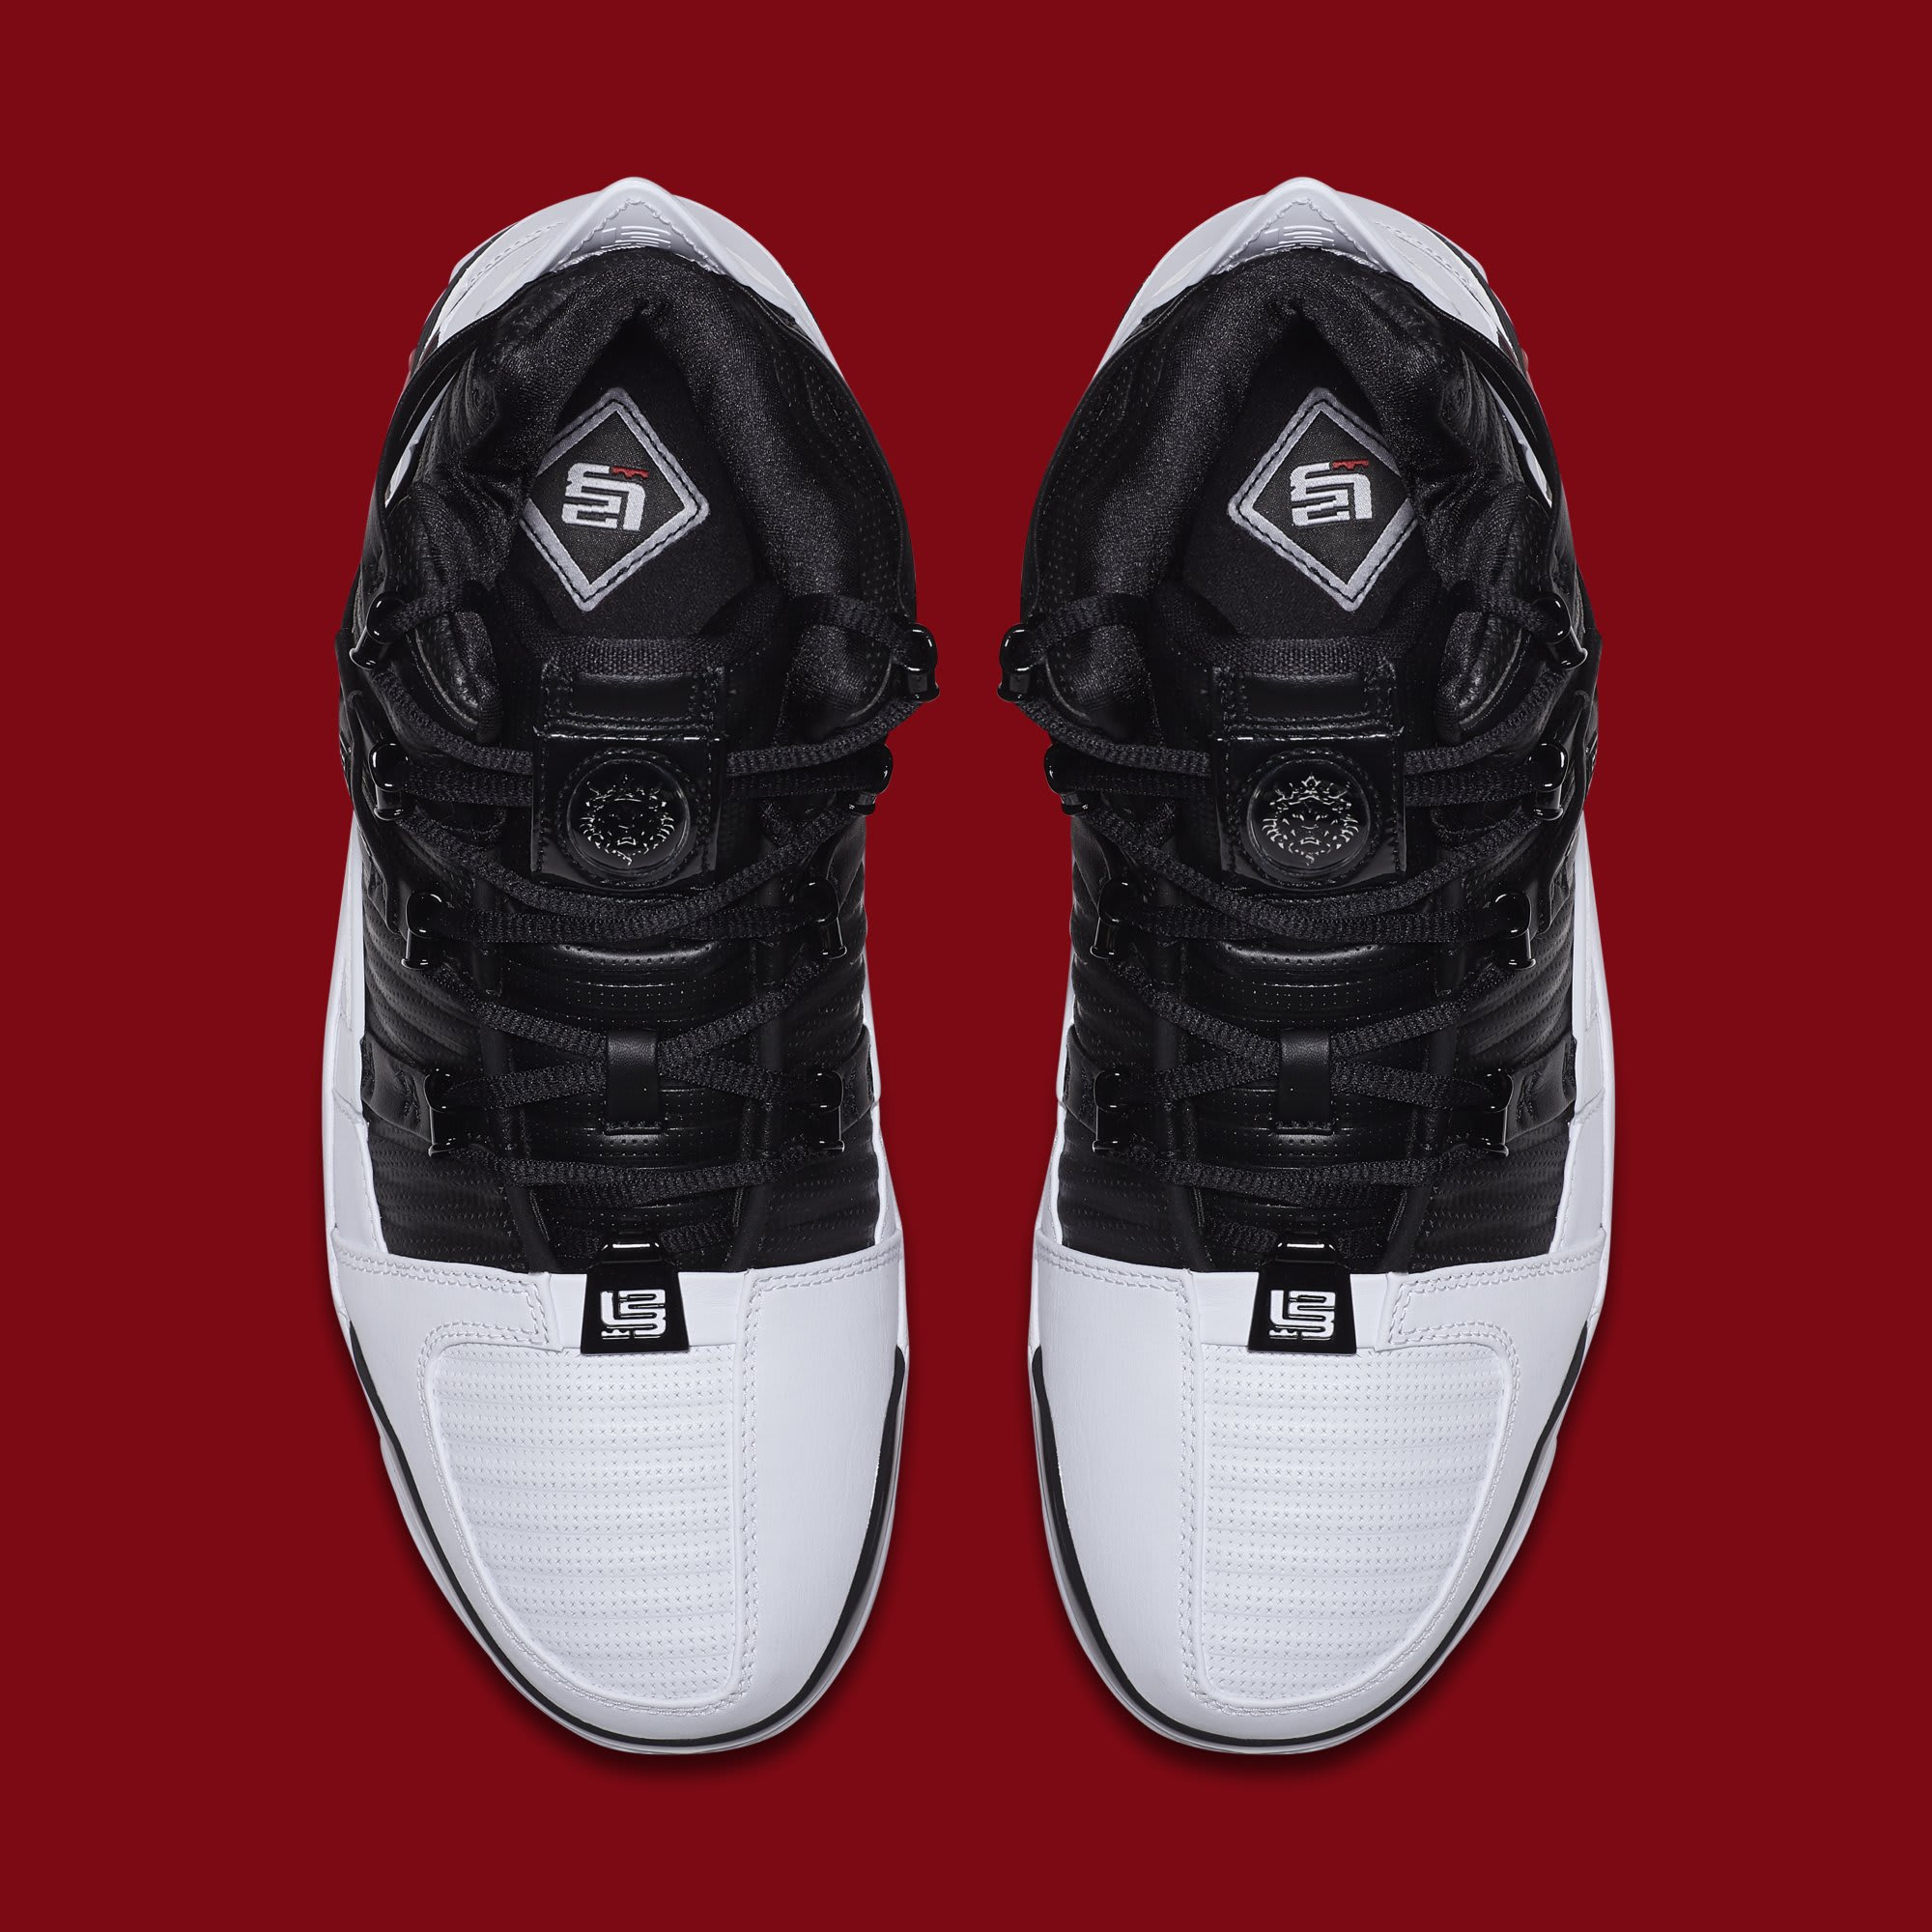 quality design 30f72 efbc0 Image via Nike Nike Zoom LeBron 3  Home  AO2434-101 (Top)